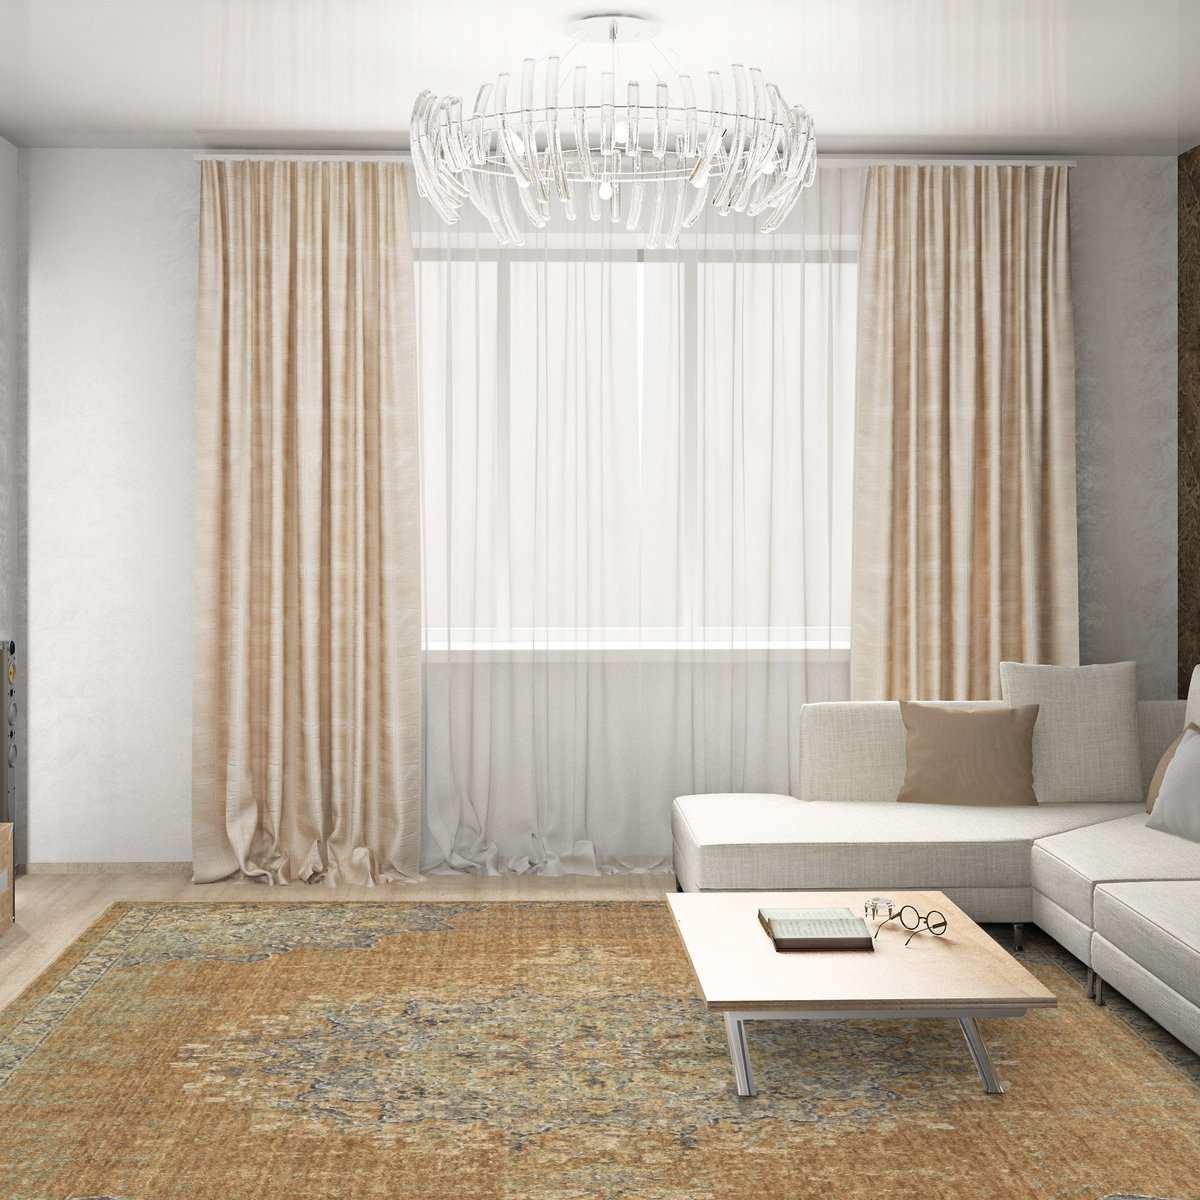 Puddling Curtains - Formal Living Room Decorating Tips